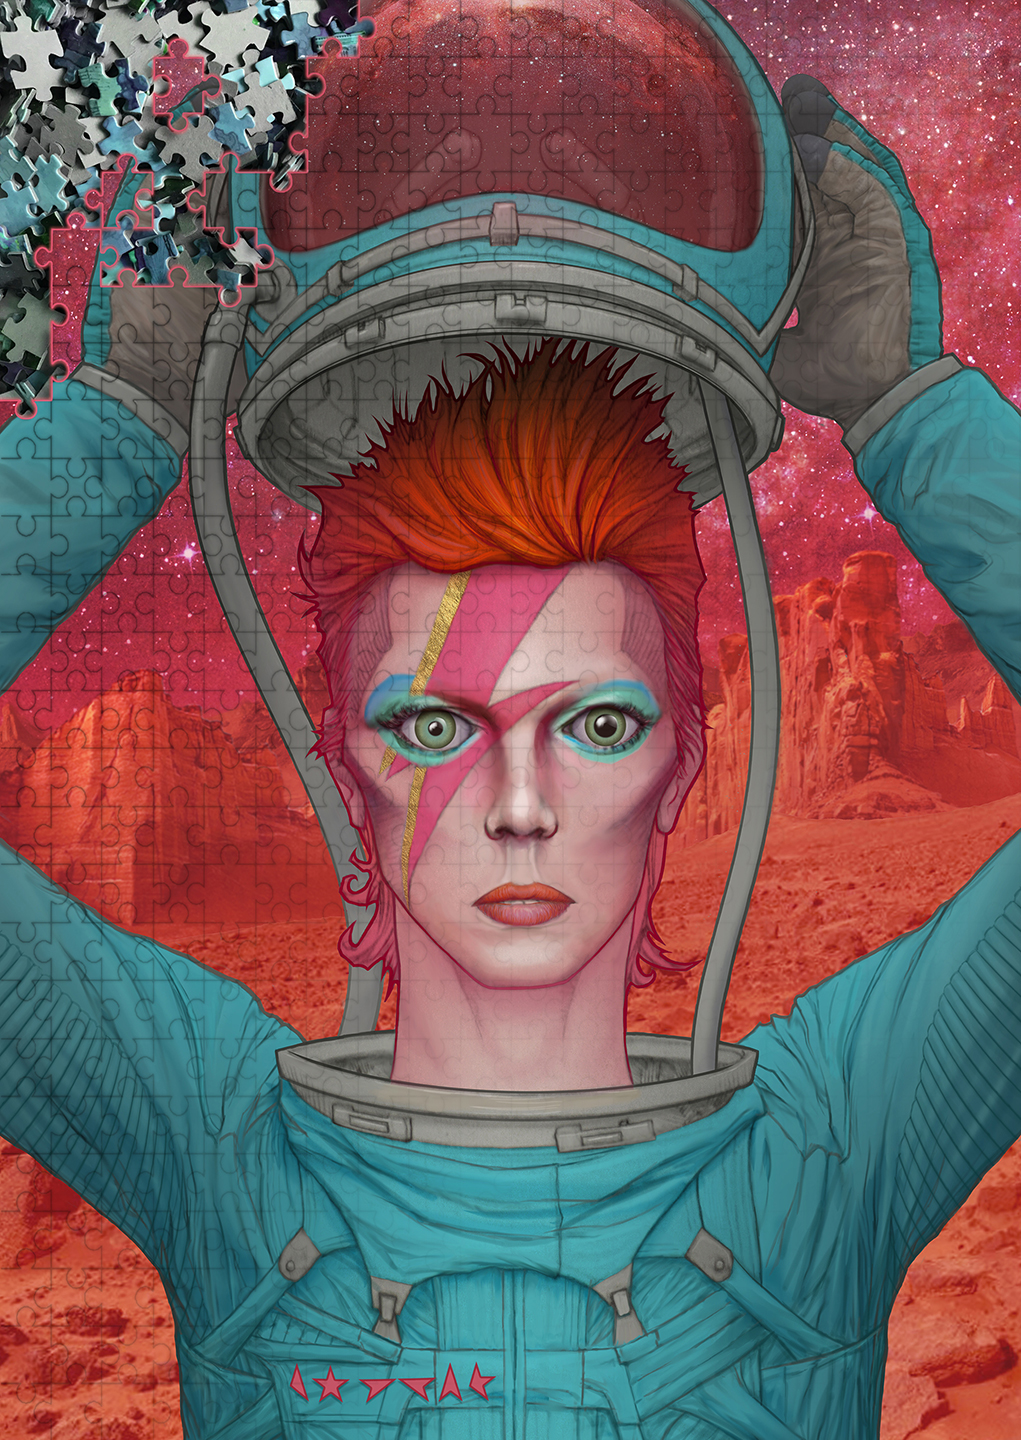 David Bowie: Ziggy Stardust on Mars display image for the art of Aaron Wolf and the jigsaw puzzles of Pandemic Puzzles, available online in the store of www.awolfillustrations.com and Etsy.com